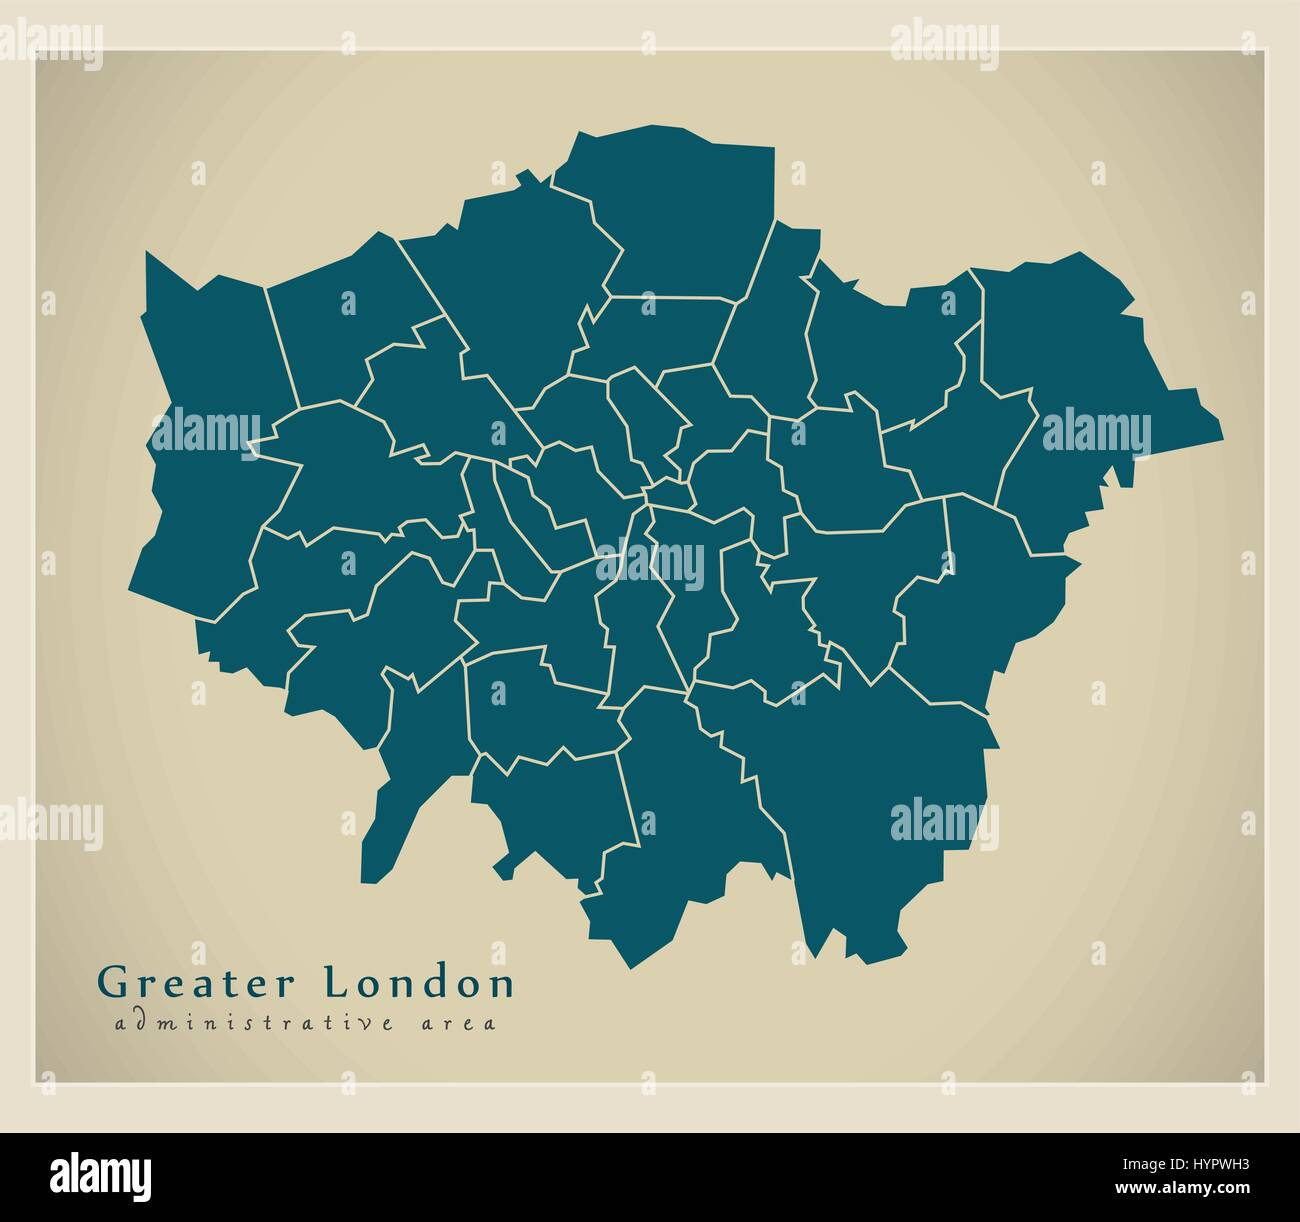 London Map Districts.Modern Map Greater London Administrative Area With Districts Uk